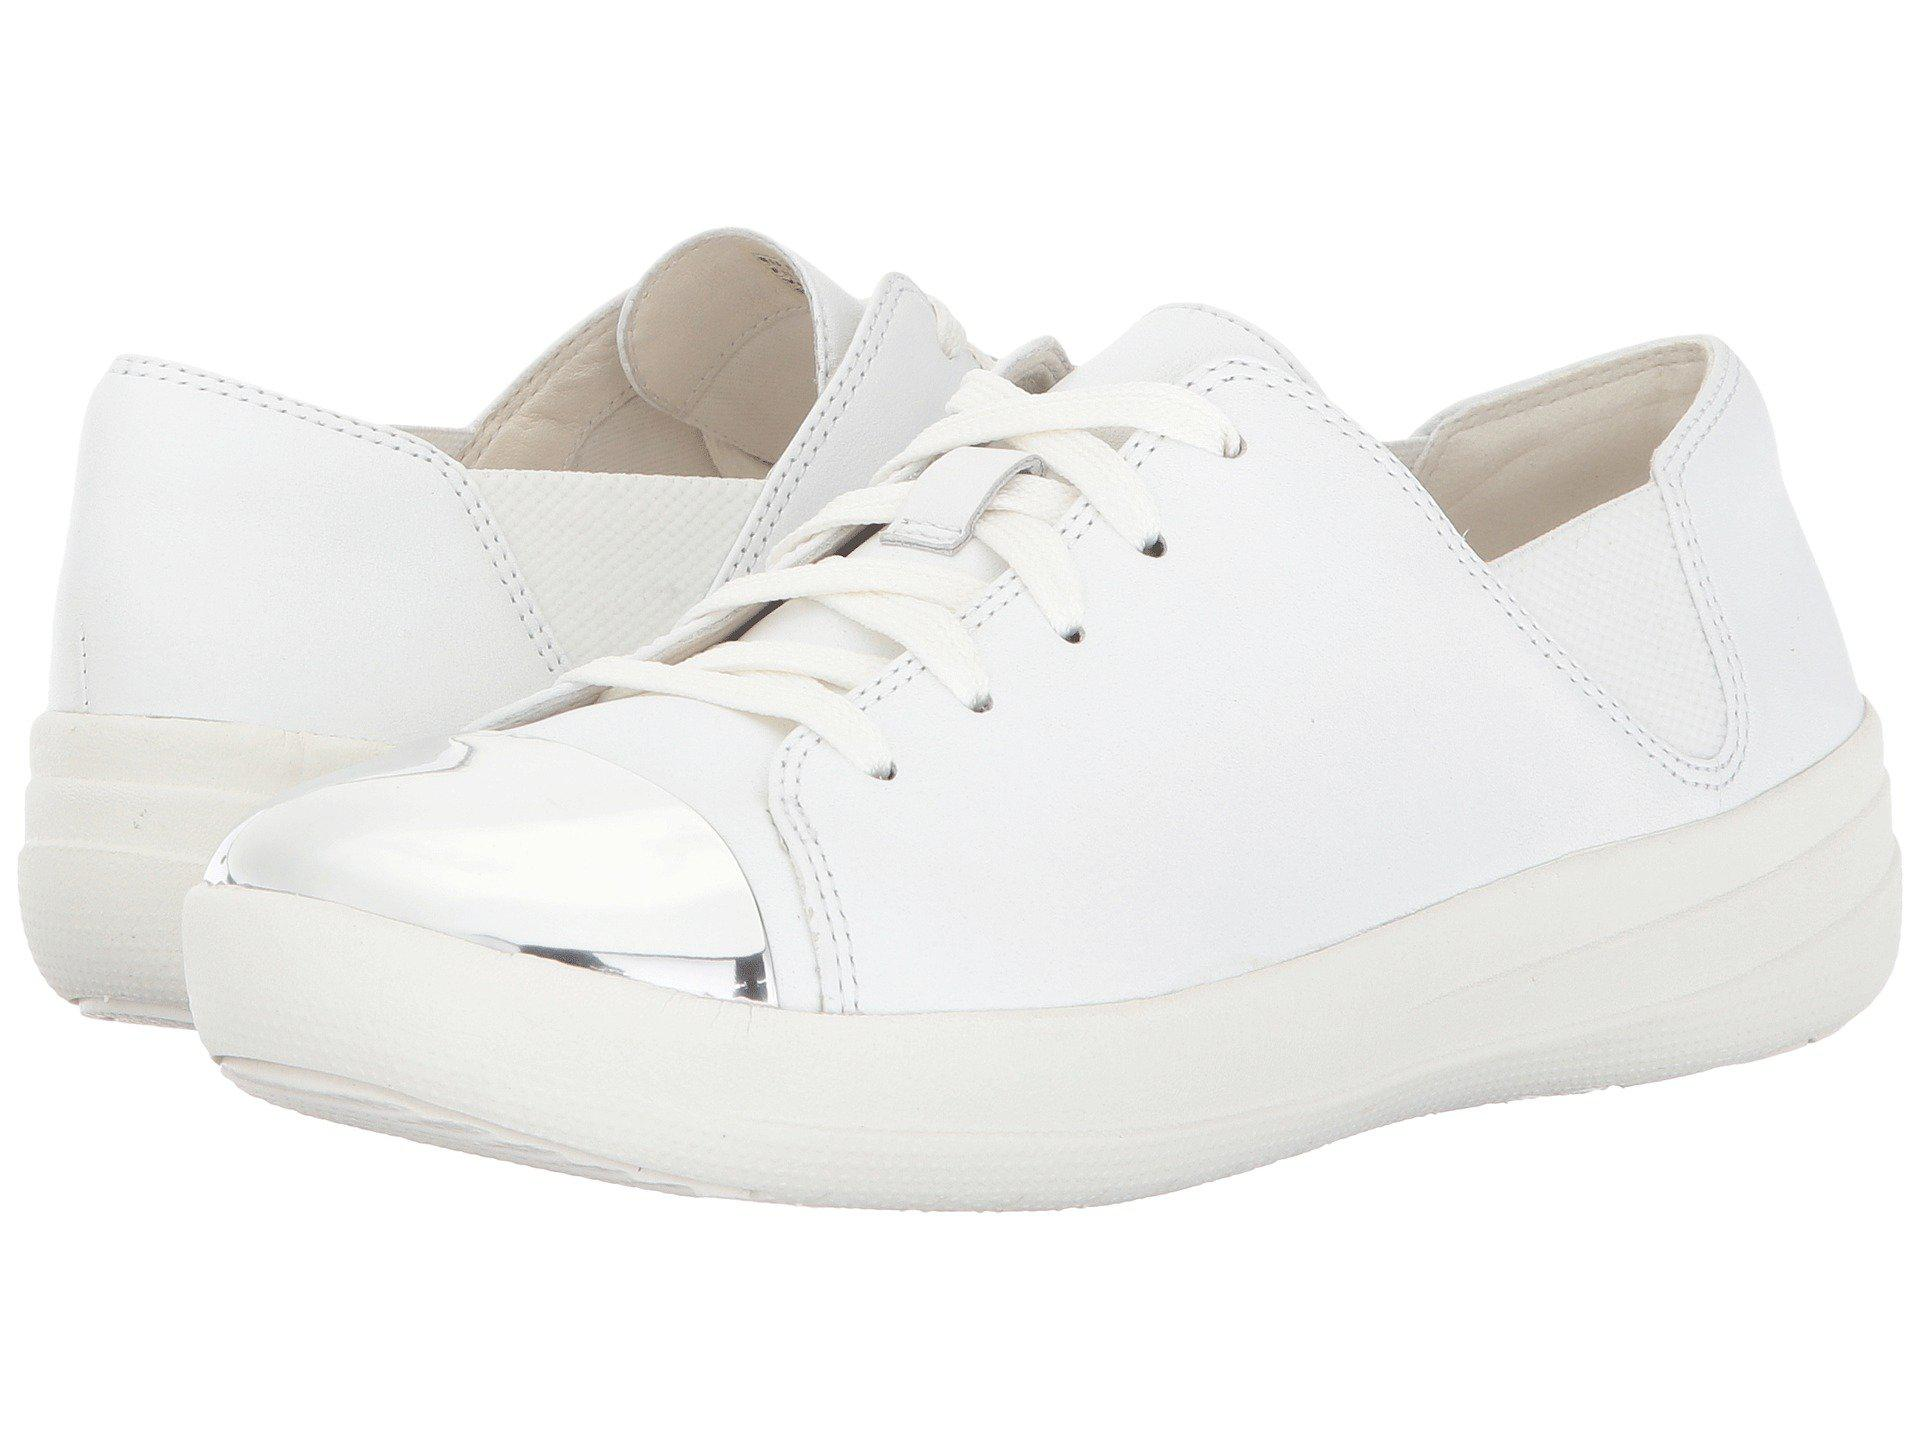 15bc044141f17b Lyst - Fitflop F-sporty Mirror-toe Sneaker in White - Save 55%